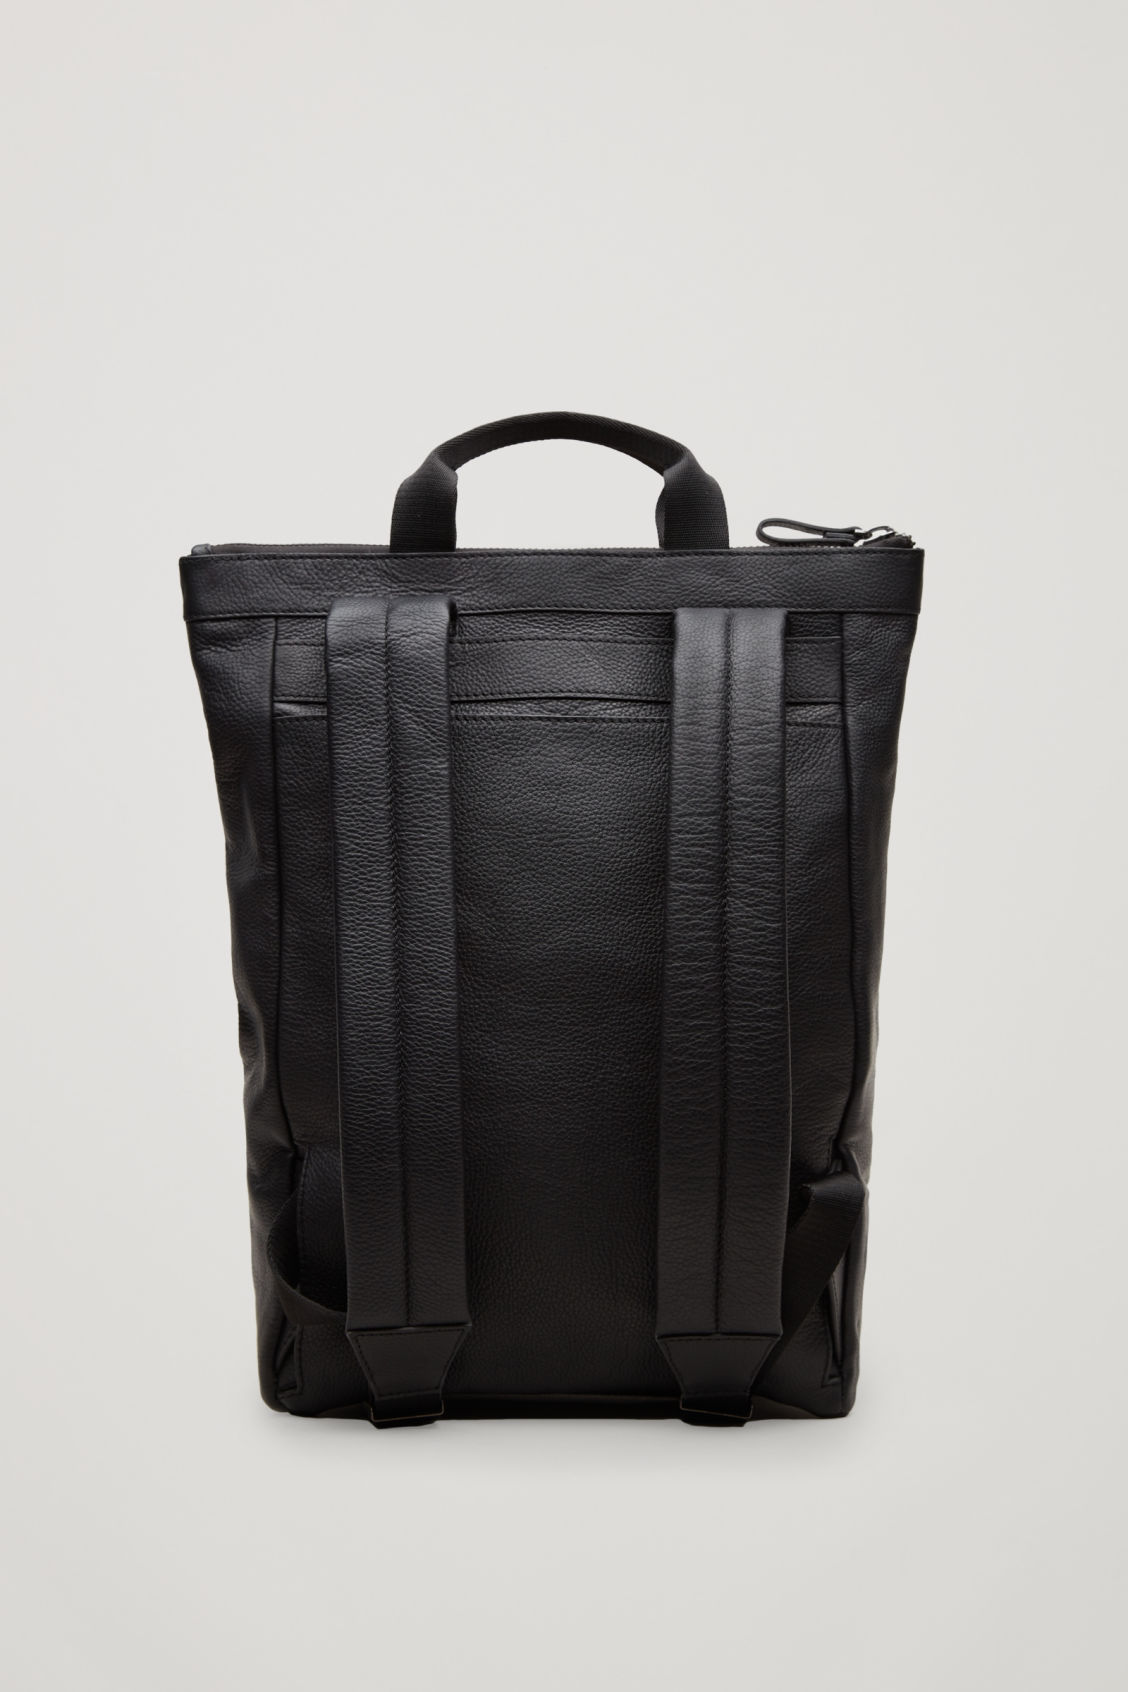 LEATHER TOTE BACKPACK - Black - Bags and Wallets - COS